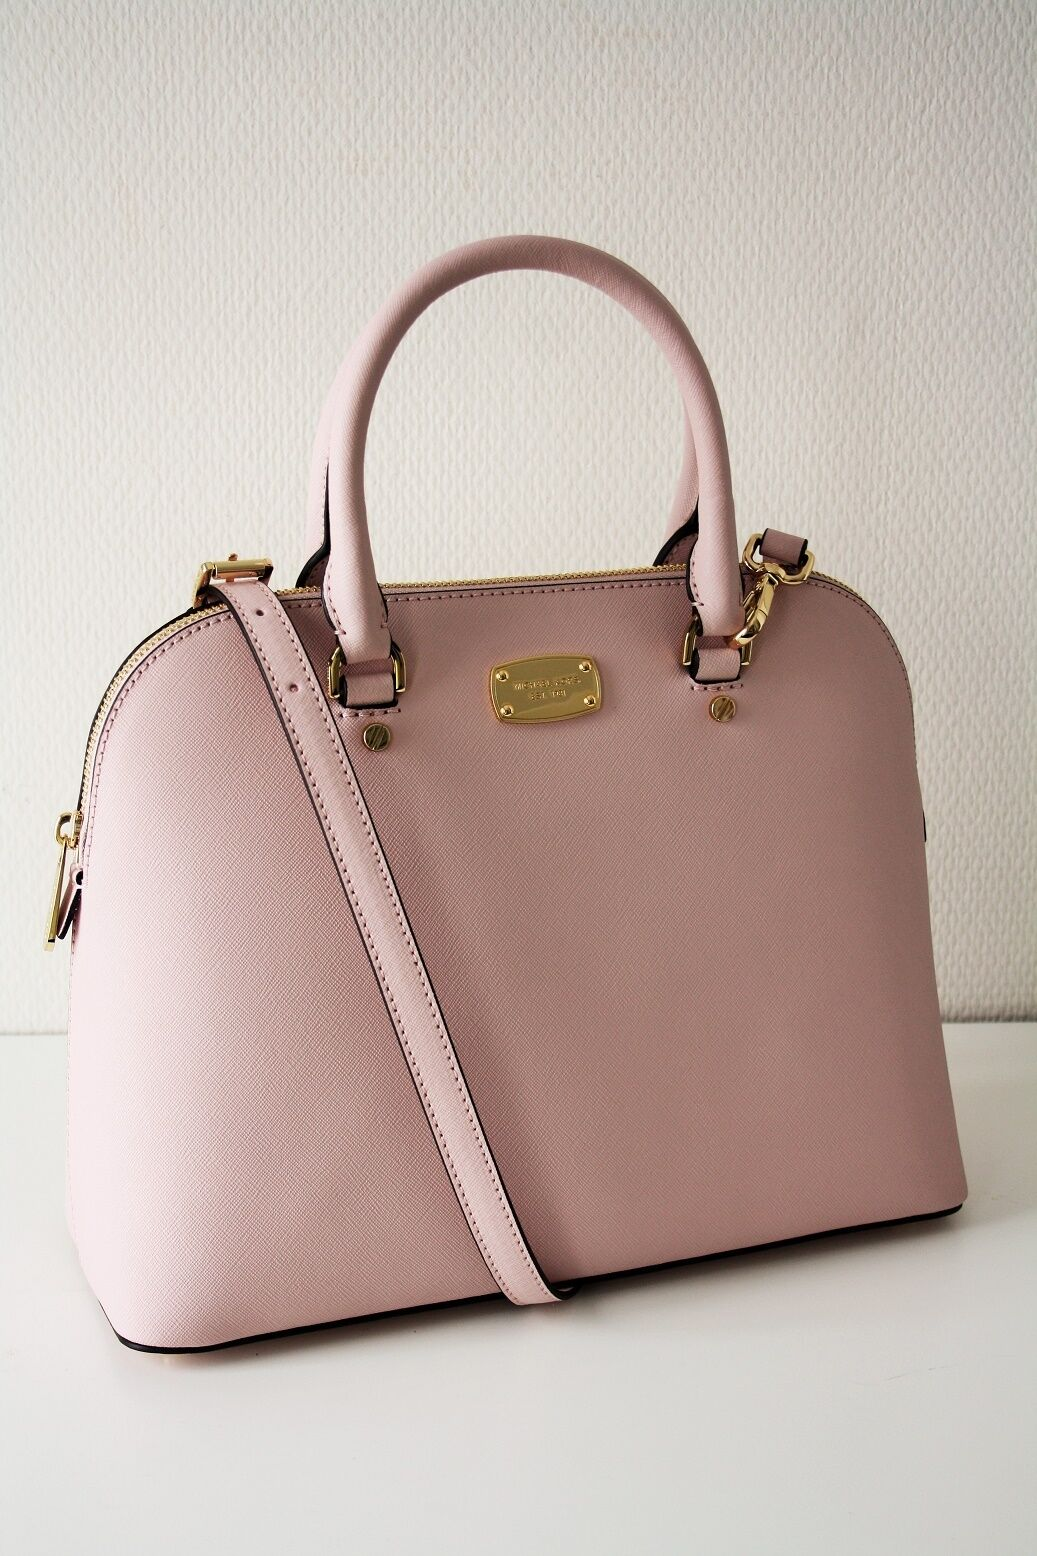 511c8433ffdc Michael Kors Cindy LG Dome Satchel Saffiano Leather Blossom rose for ...